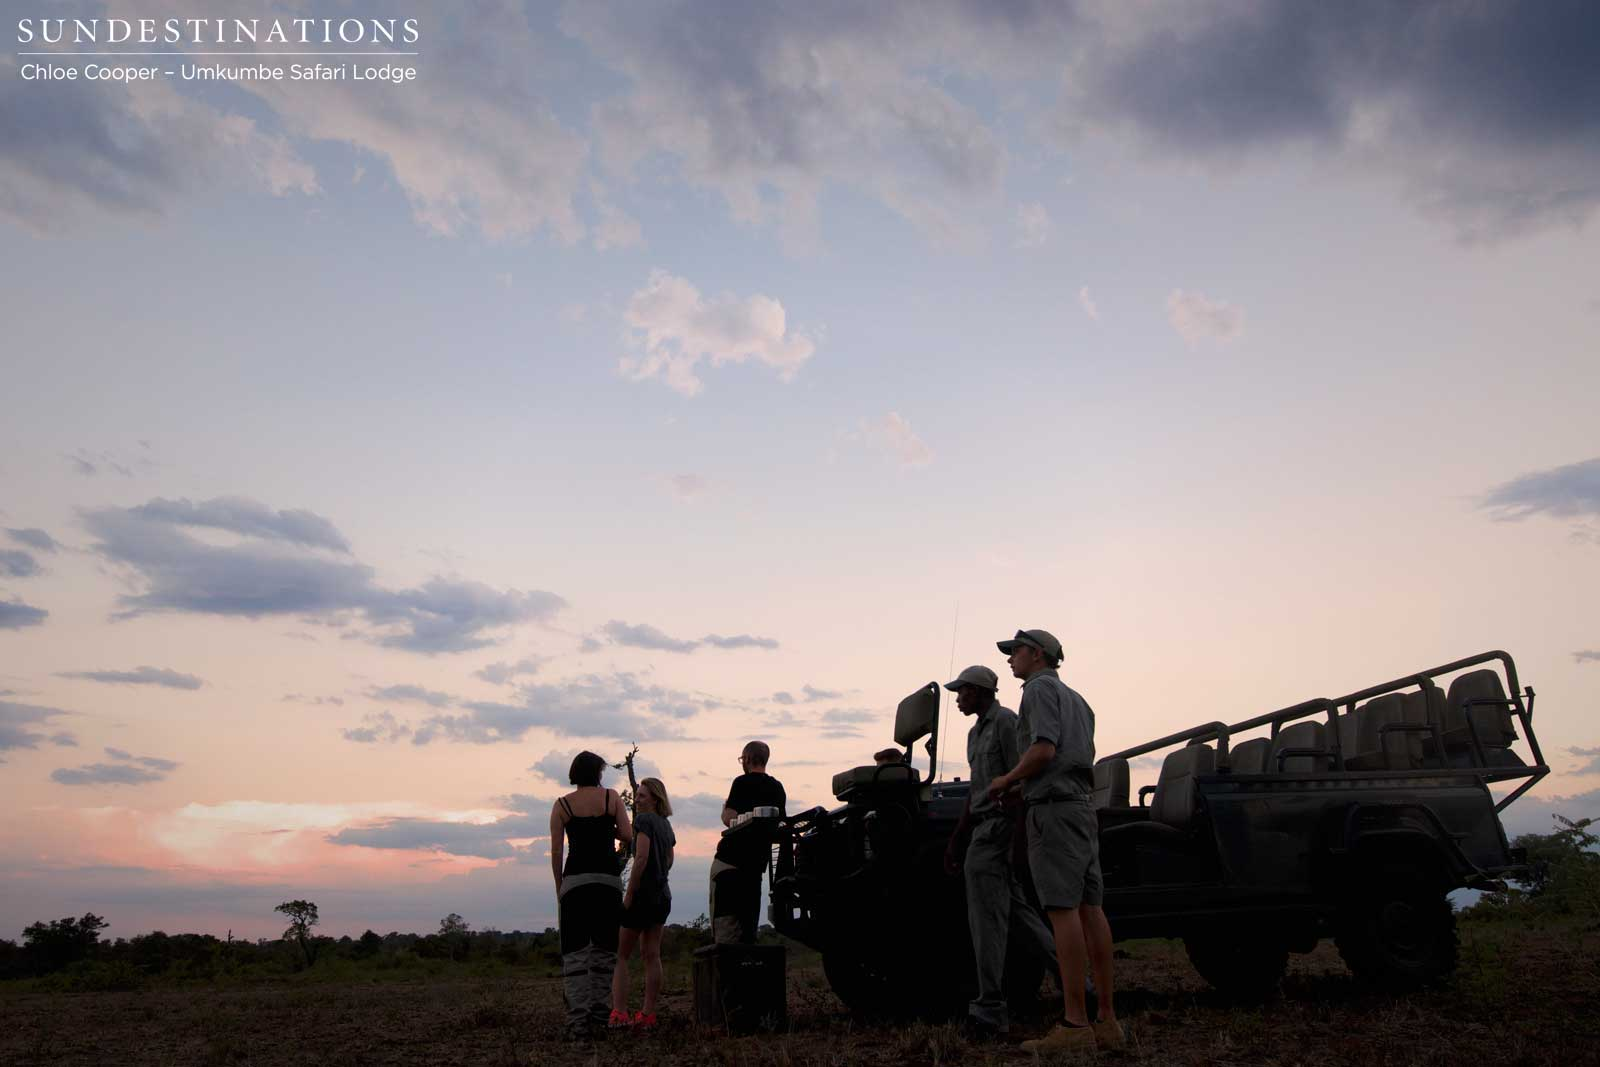 Elephants, Sundowners & Rain at Umkumbe Safari Lodge!